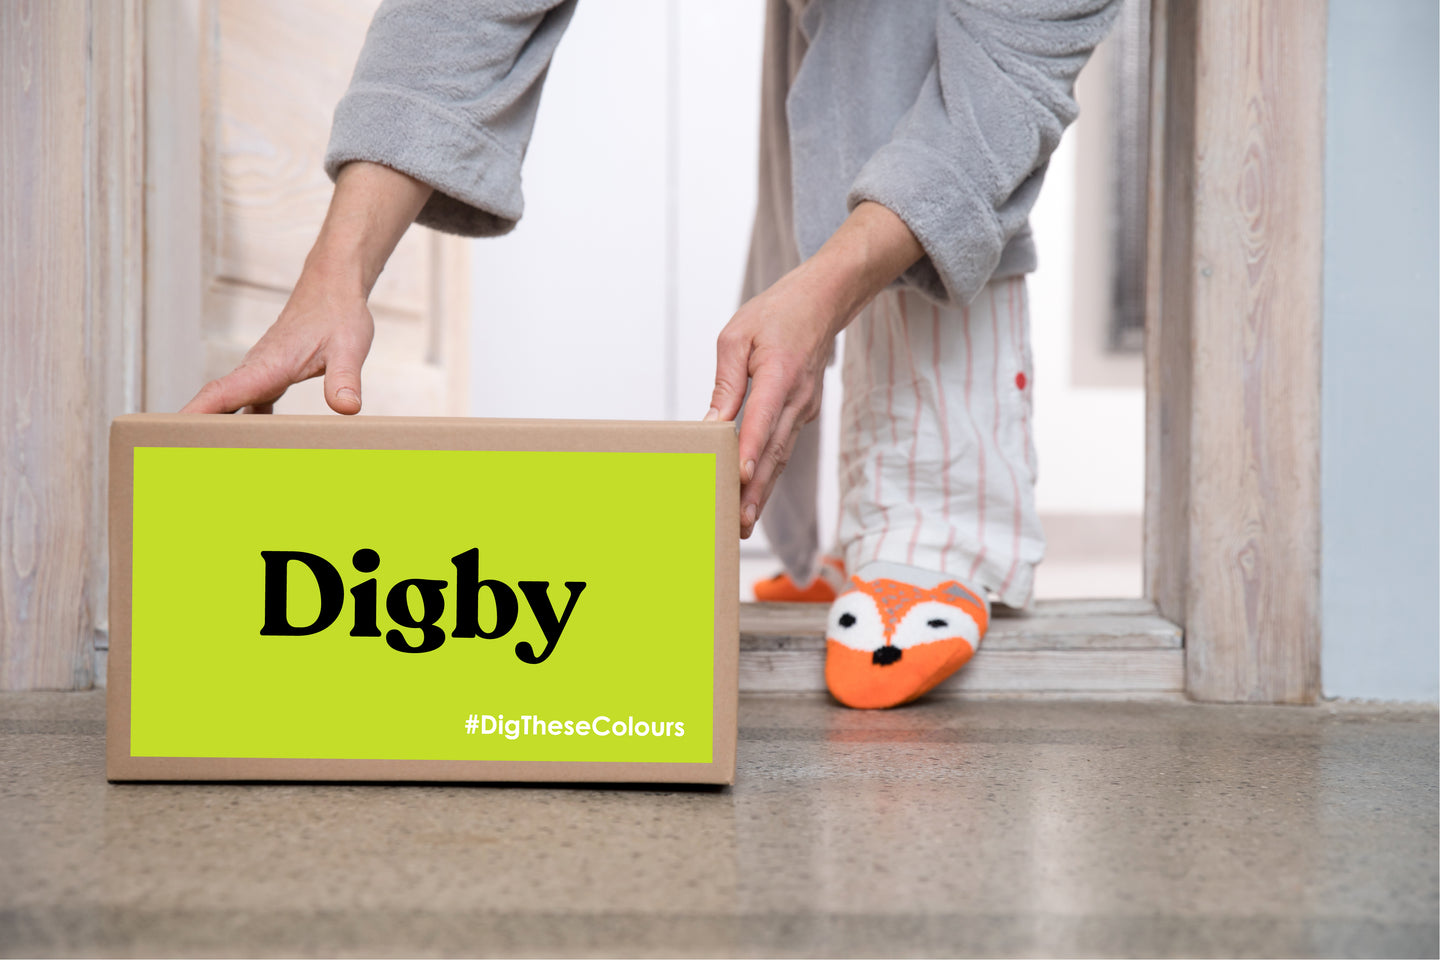 Image of woman picking up a Digby Paints box at her front door with slippers on